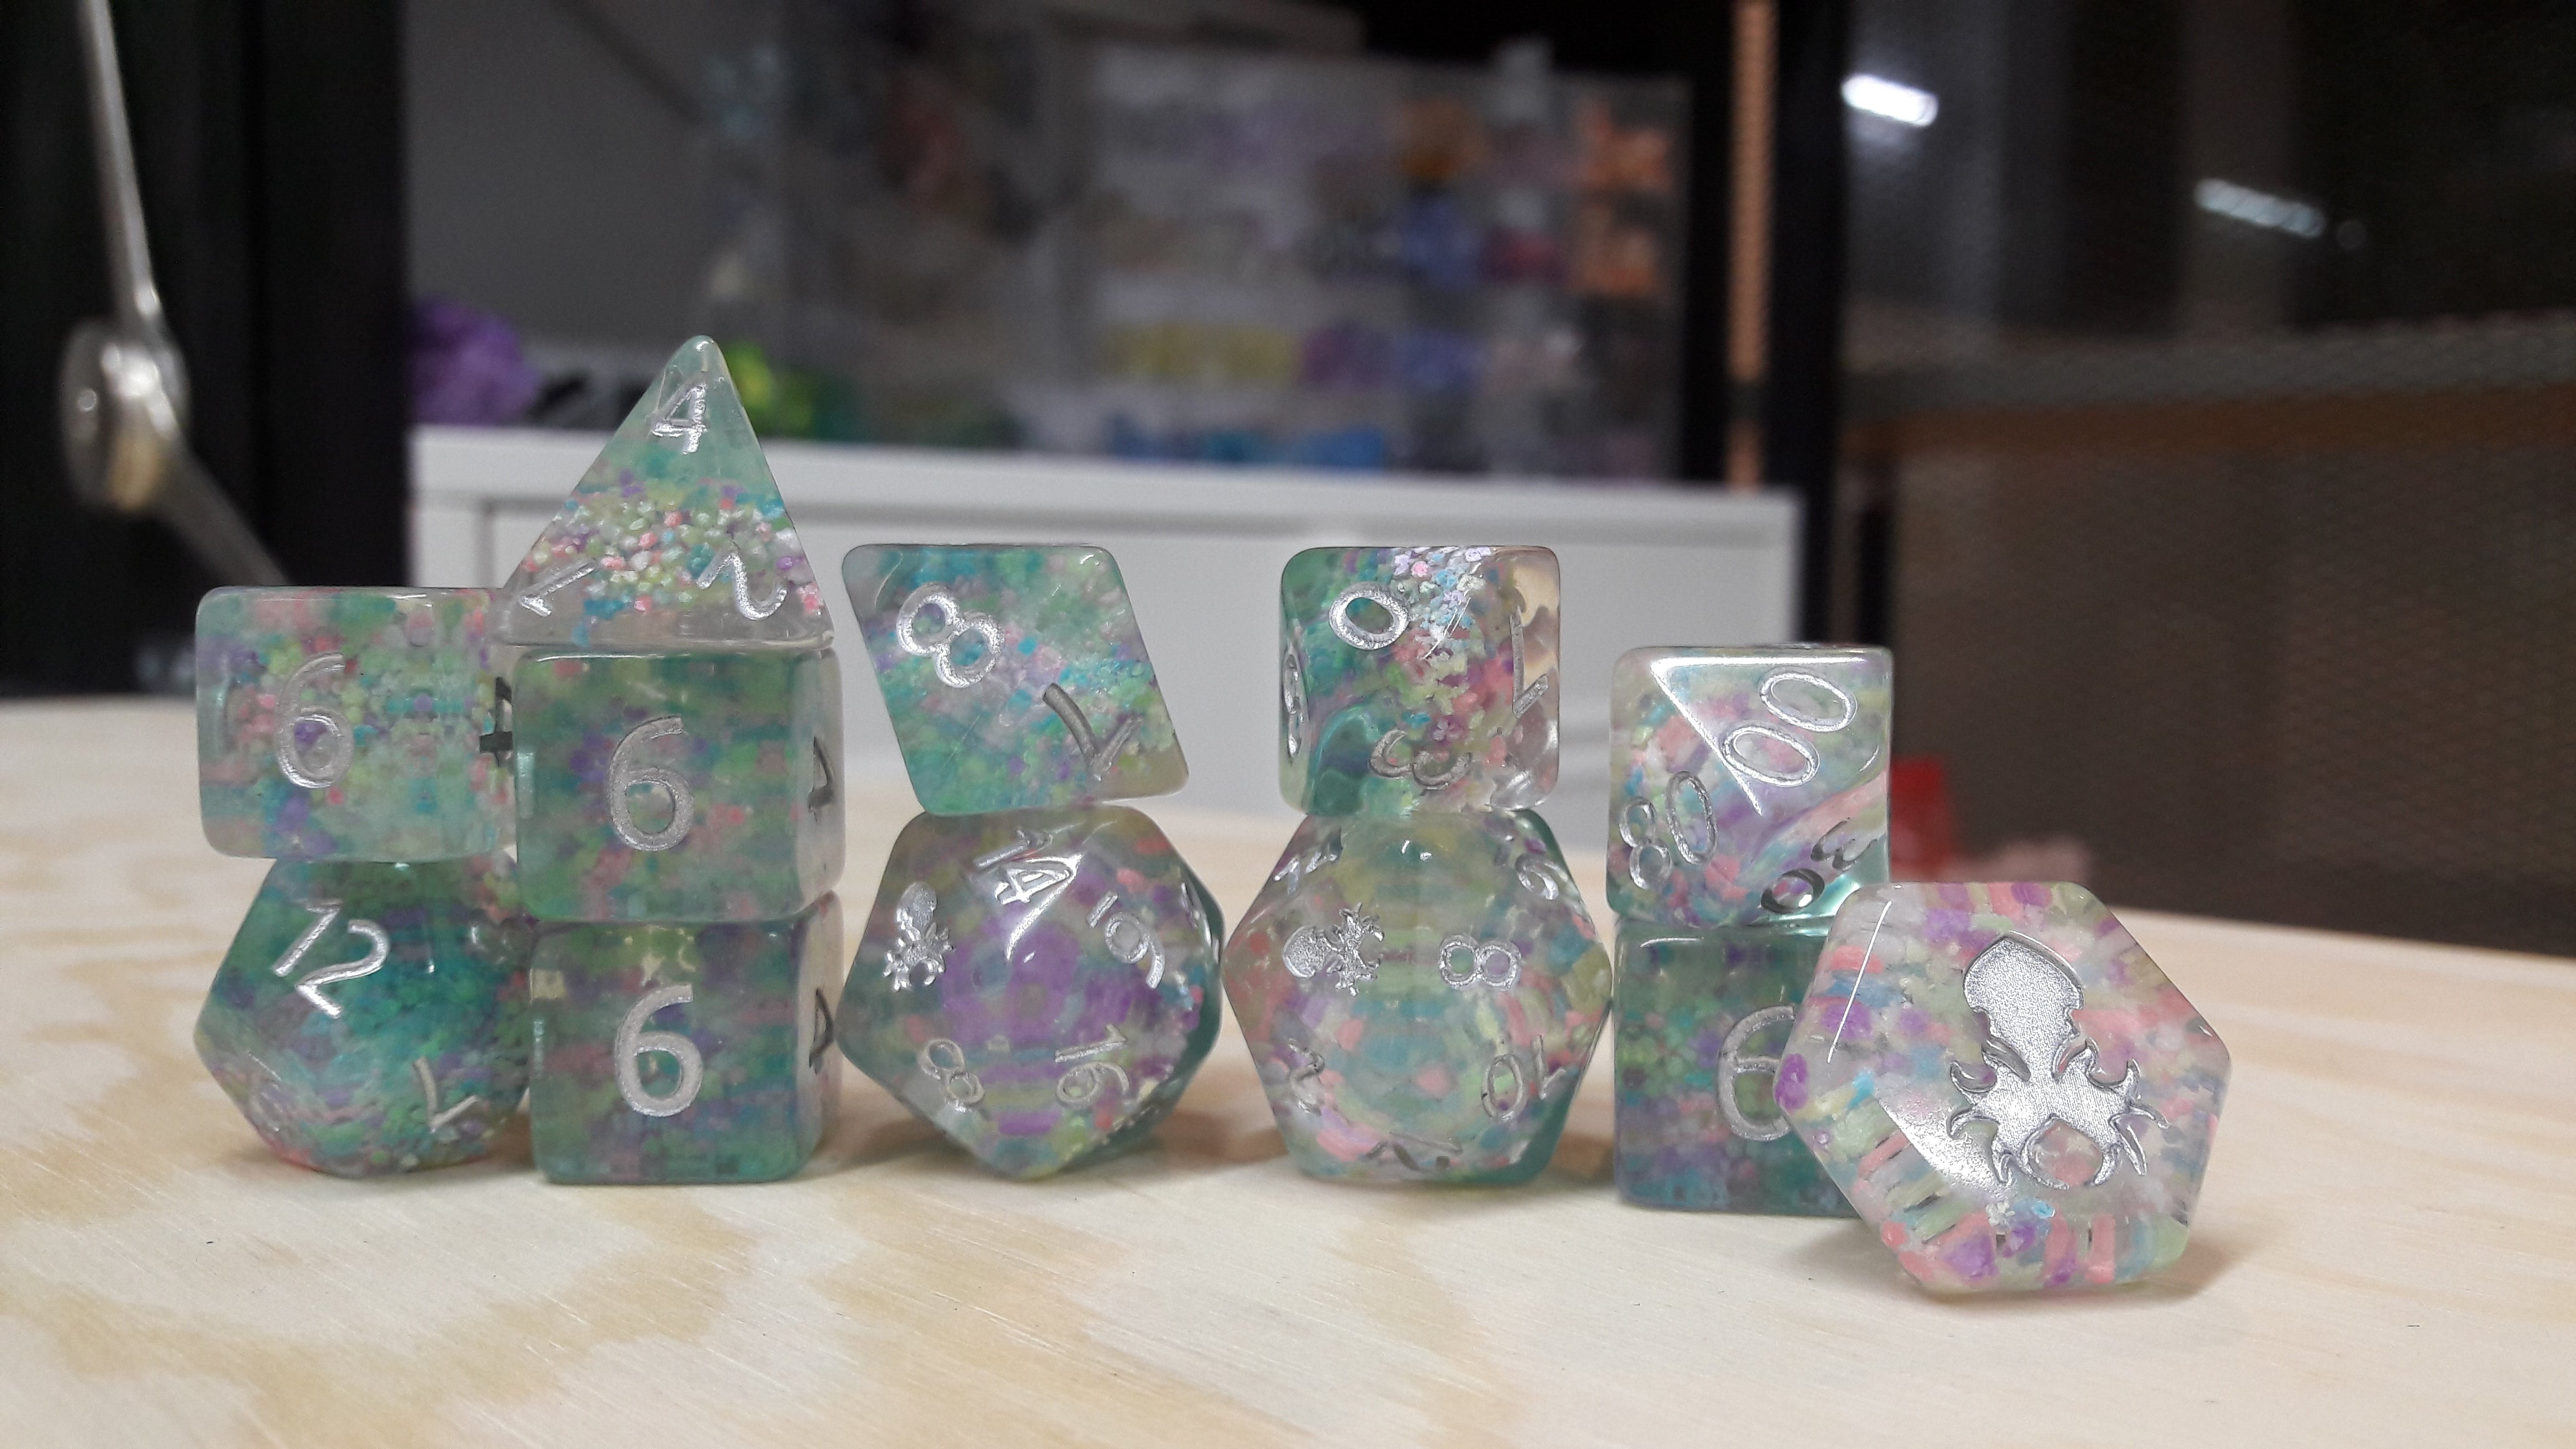 Glowquarium Teal 12pc Polyhedral Dice set with Glow in the Dark Particles - Kraken Dice | Sunny Pair'O'Dice